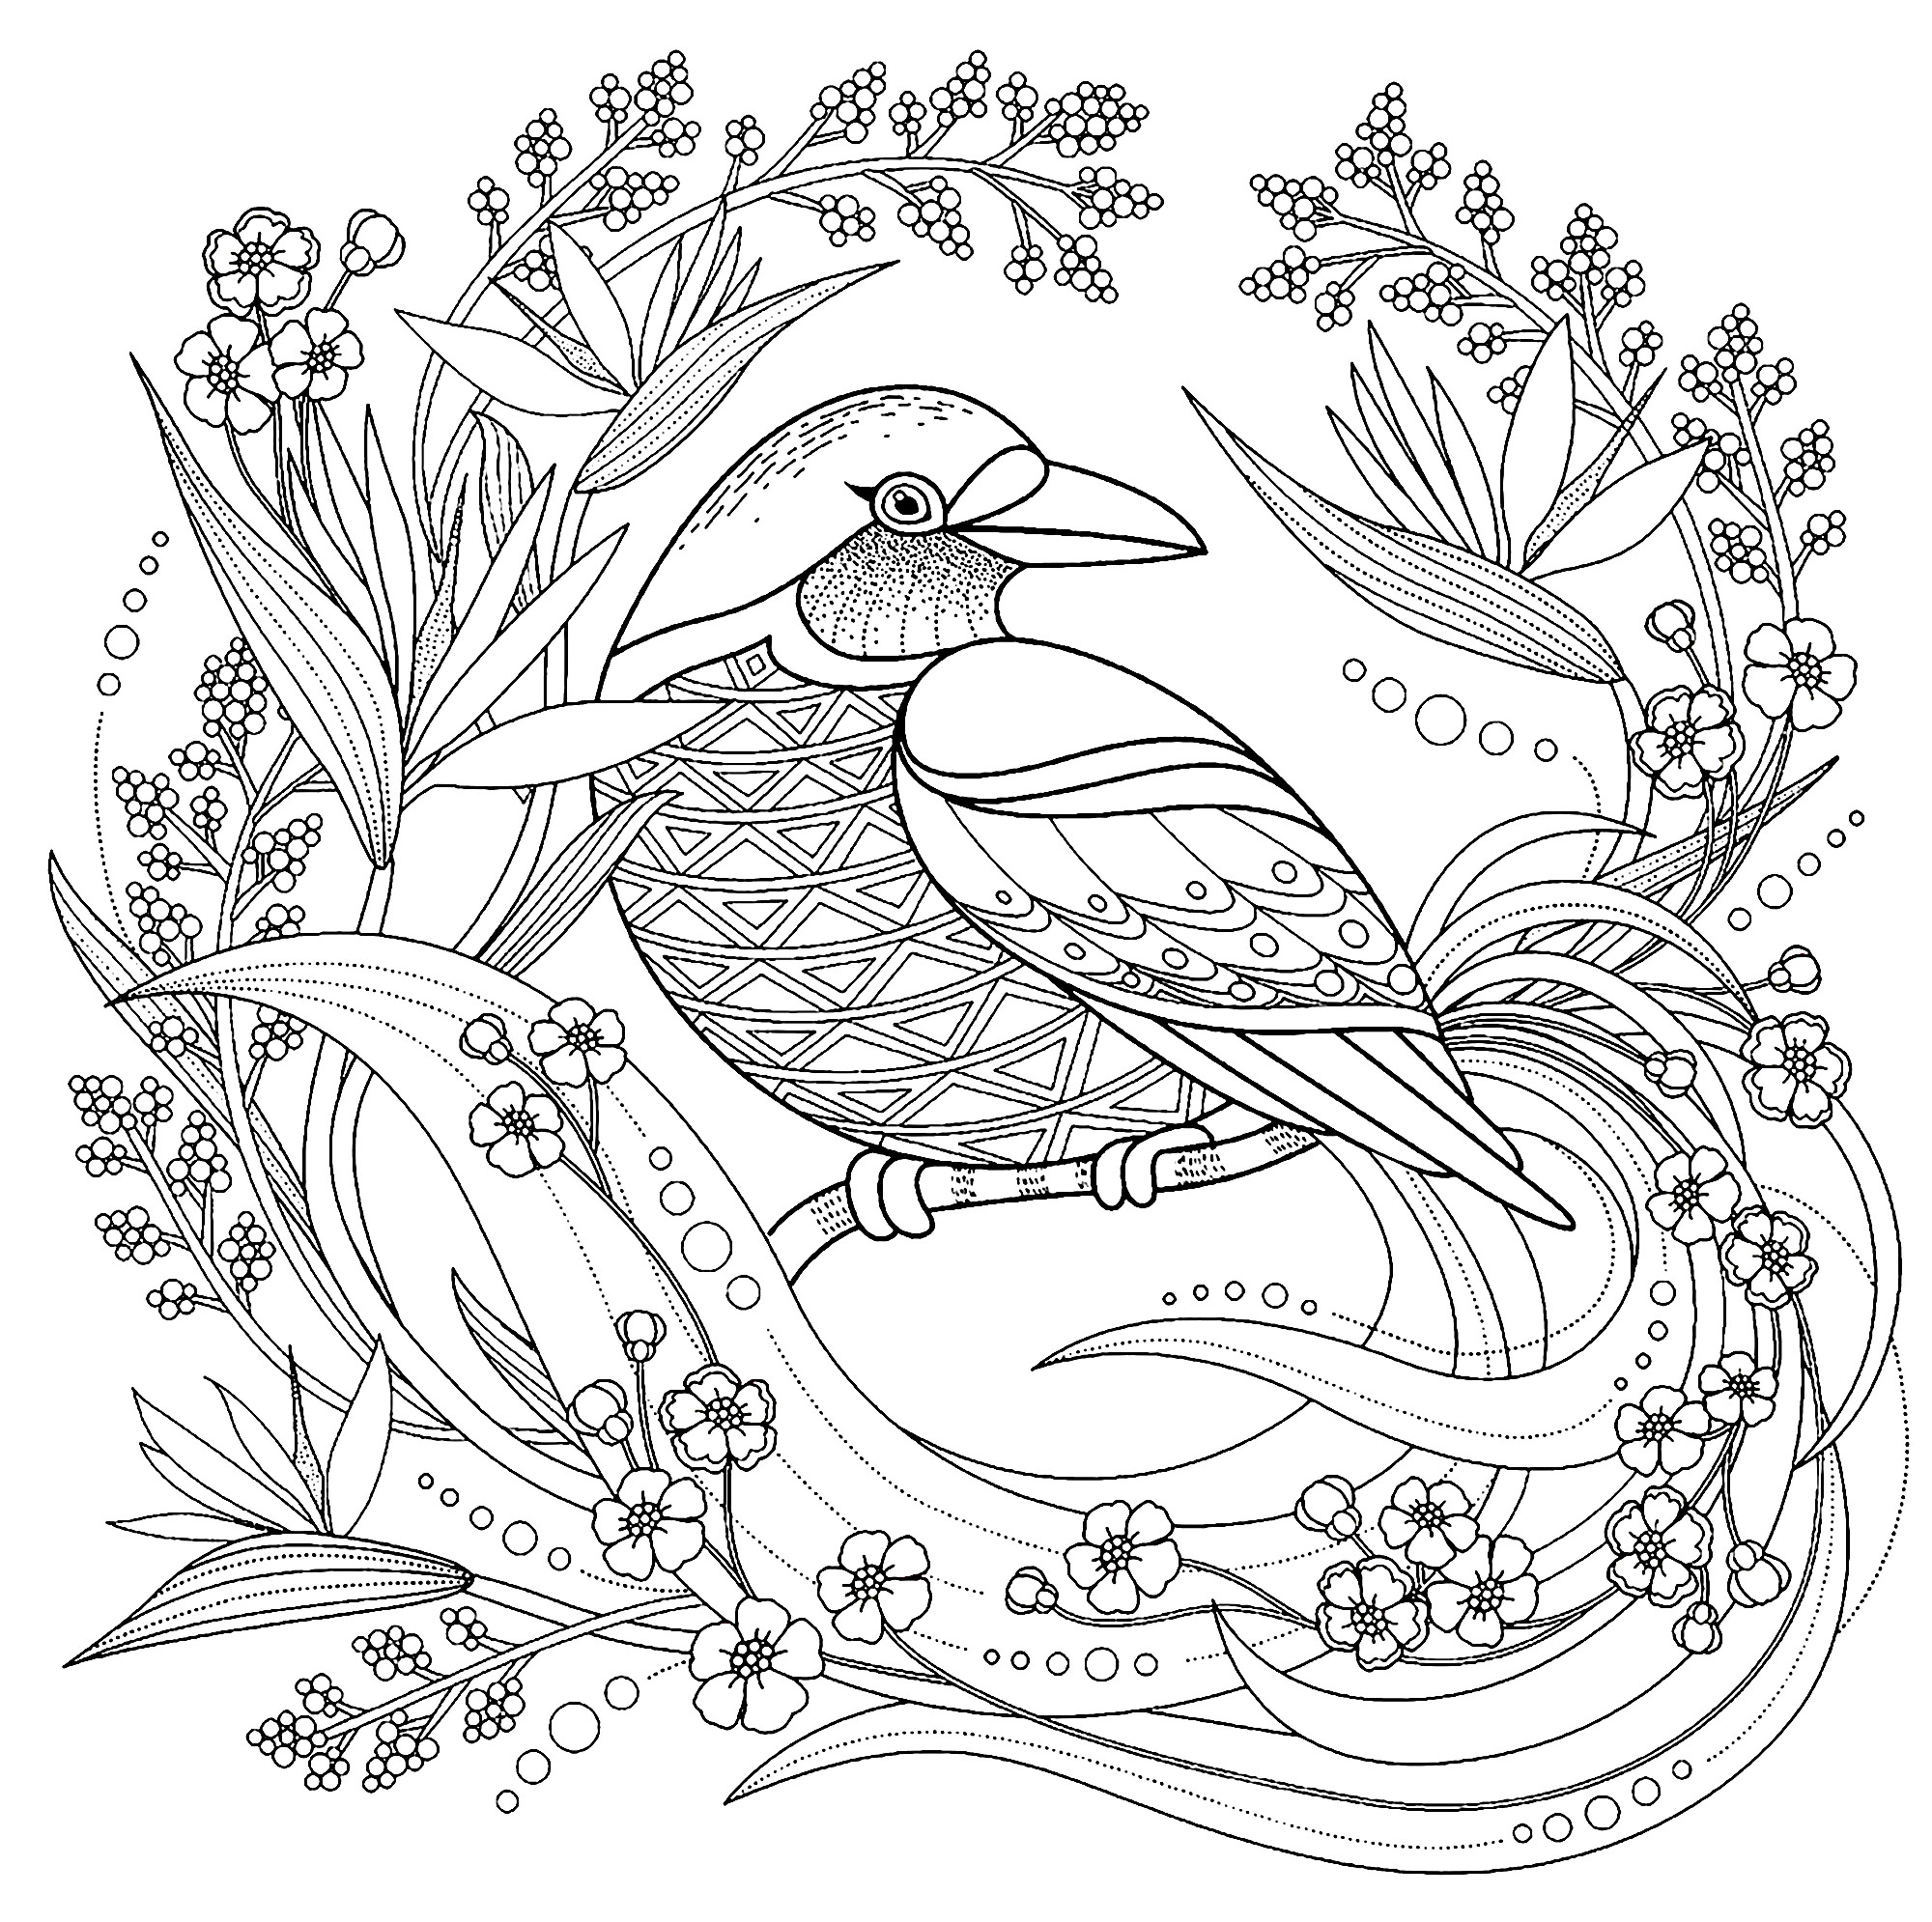 coloring birds for kids birds free to color for children birds kids coloring pages for kids coloring birds